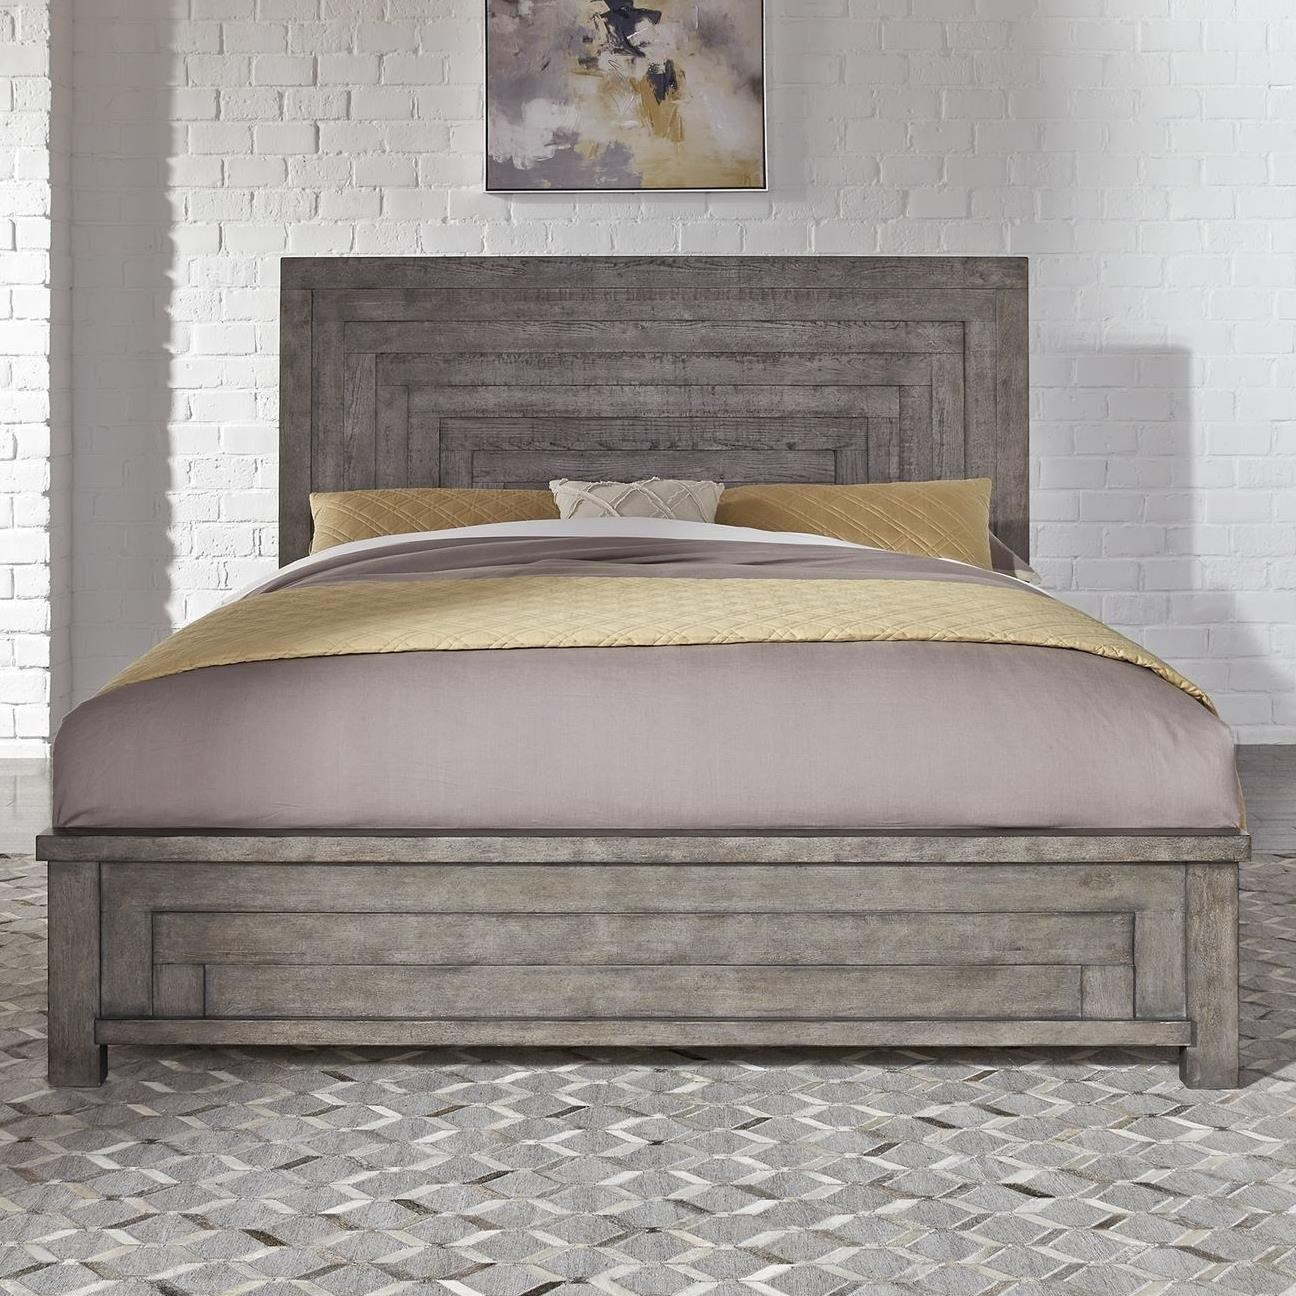 Picture of: Liberty Furniture Modern Farmhouse Contemporary Queen Low Profile Bed Royal Furniture Platform Beds Low Profile Beds